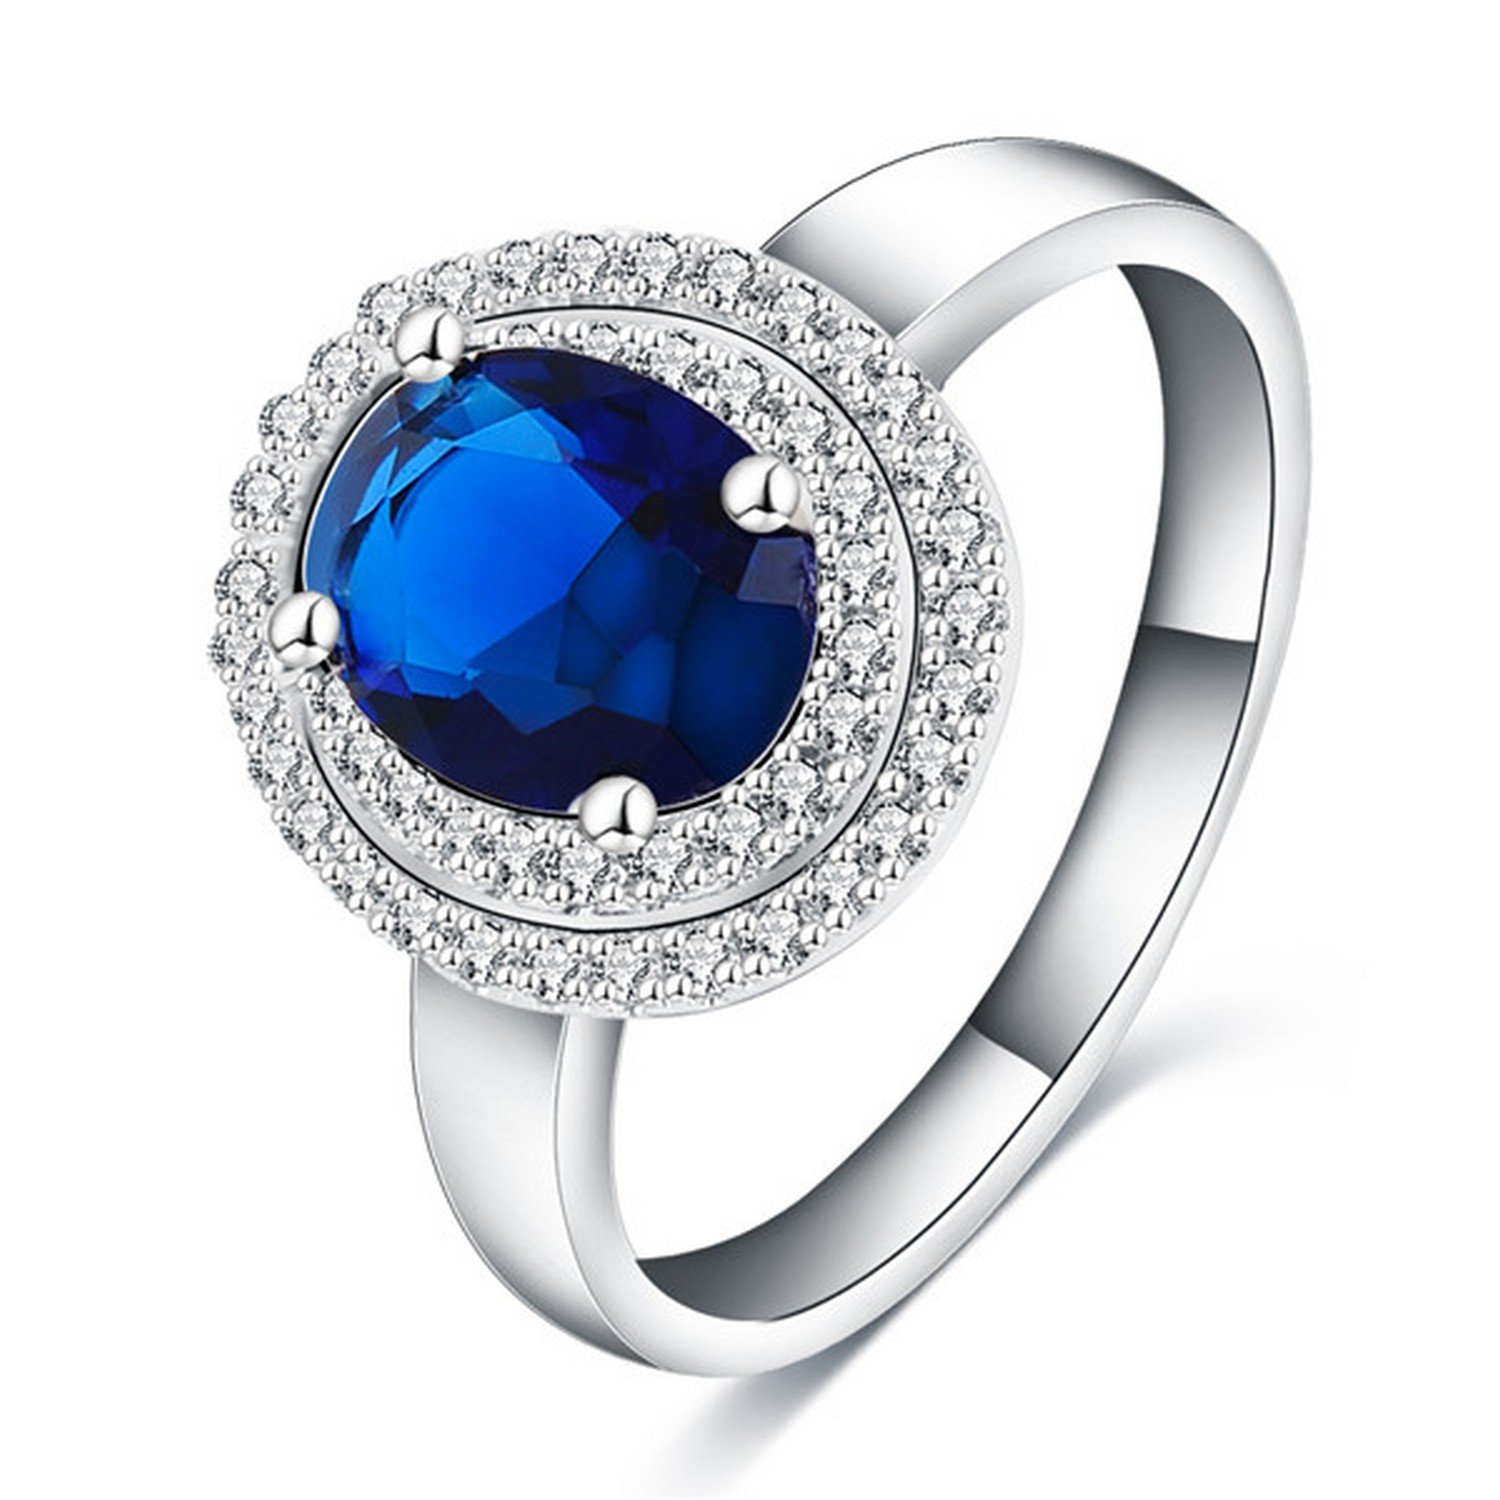 Slyq Jewelry Top Women Promise Rings Silver Color Micro Inlay Cubic Zircon Rings Fine Jewelry Anillos